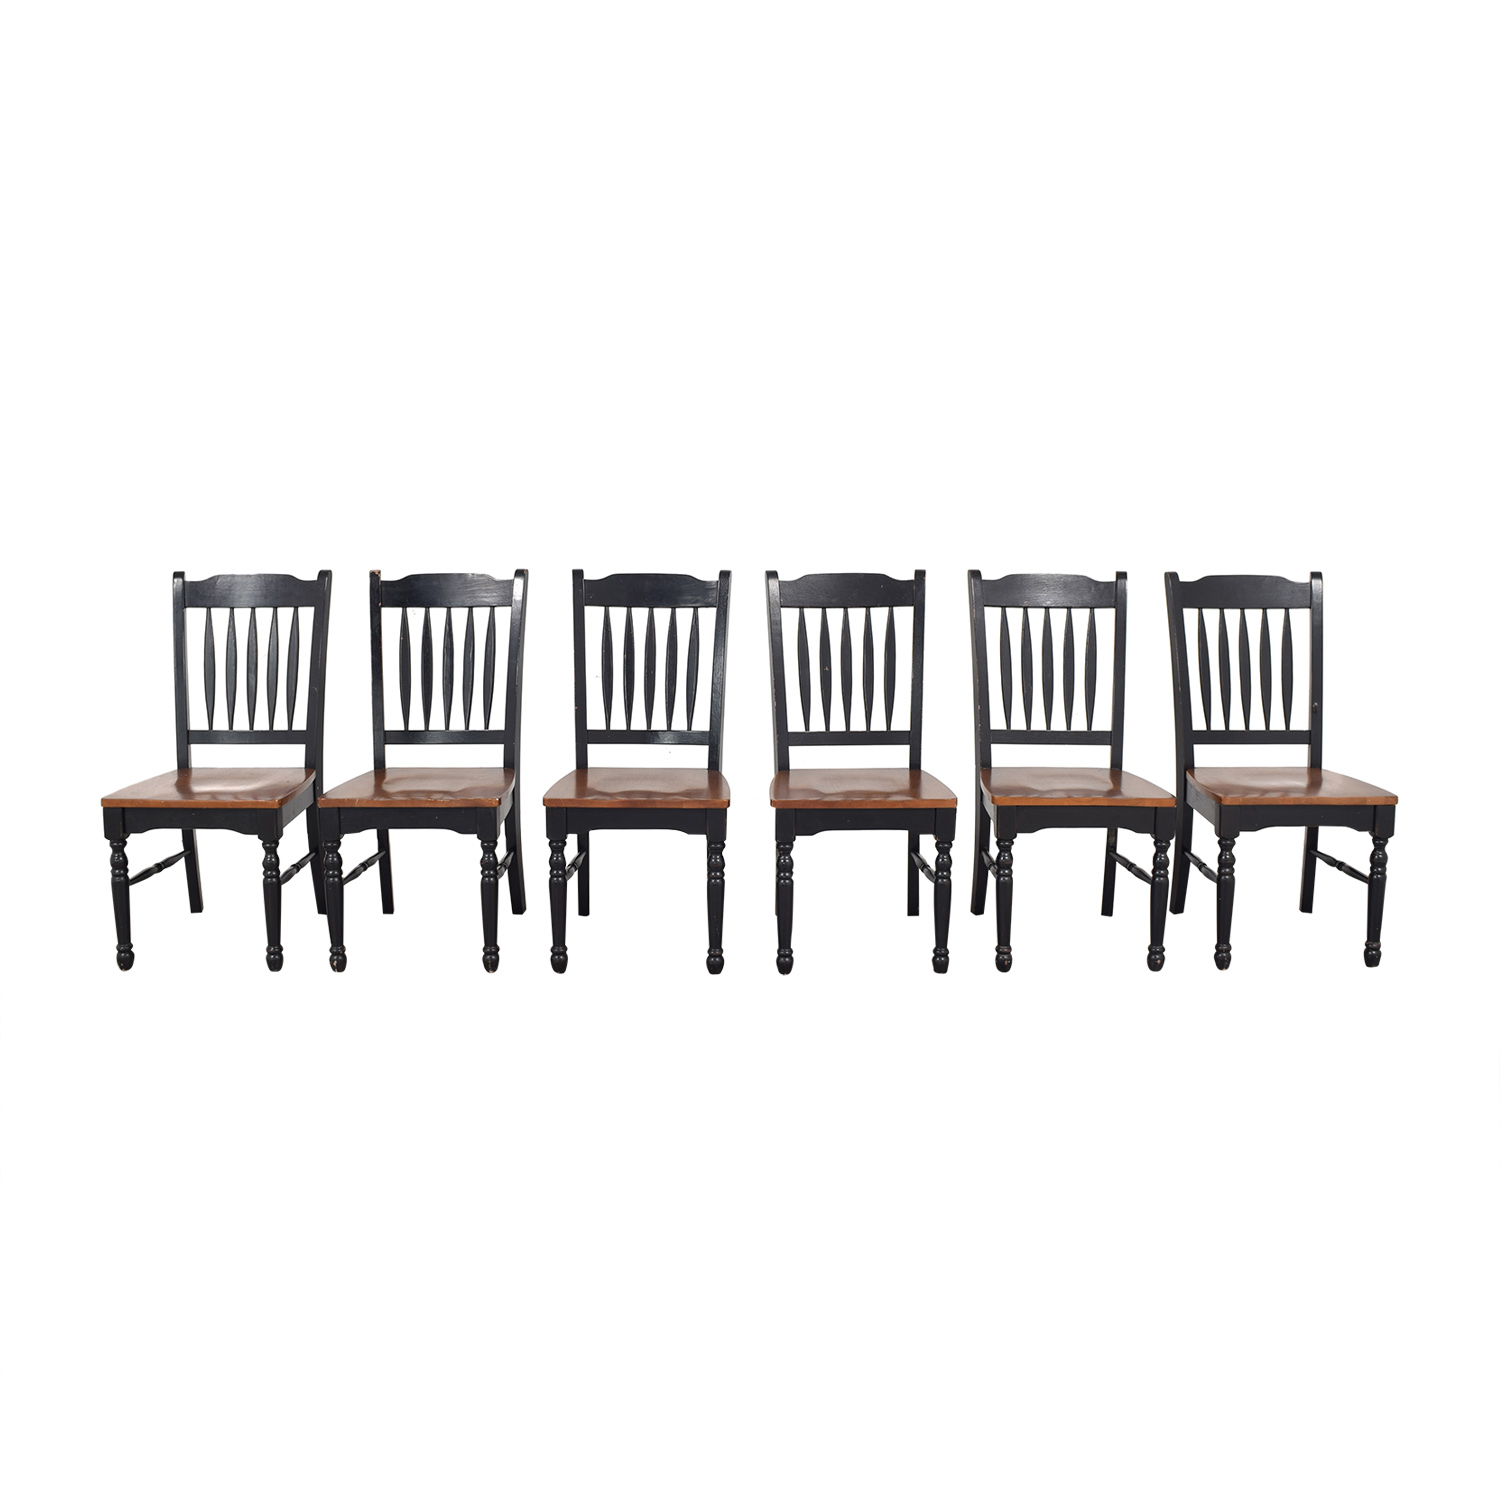 Pottery Barn Pottery Barn Spindle Back Dining Chairs second hand